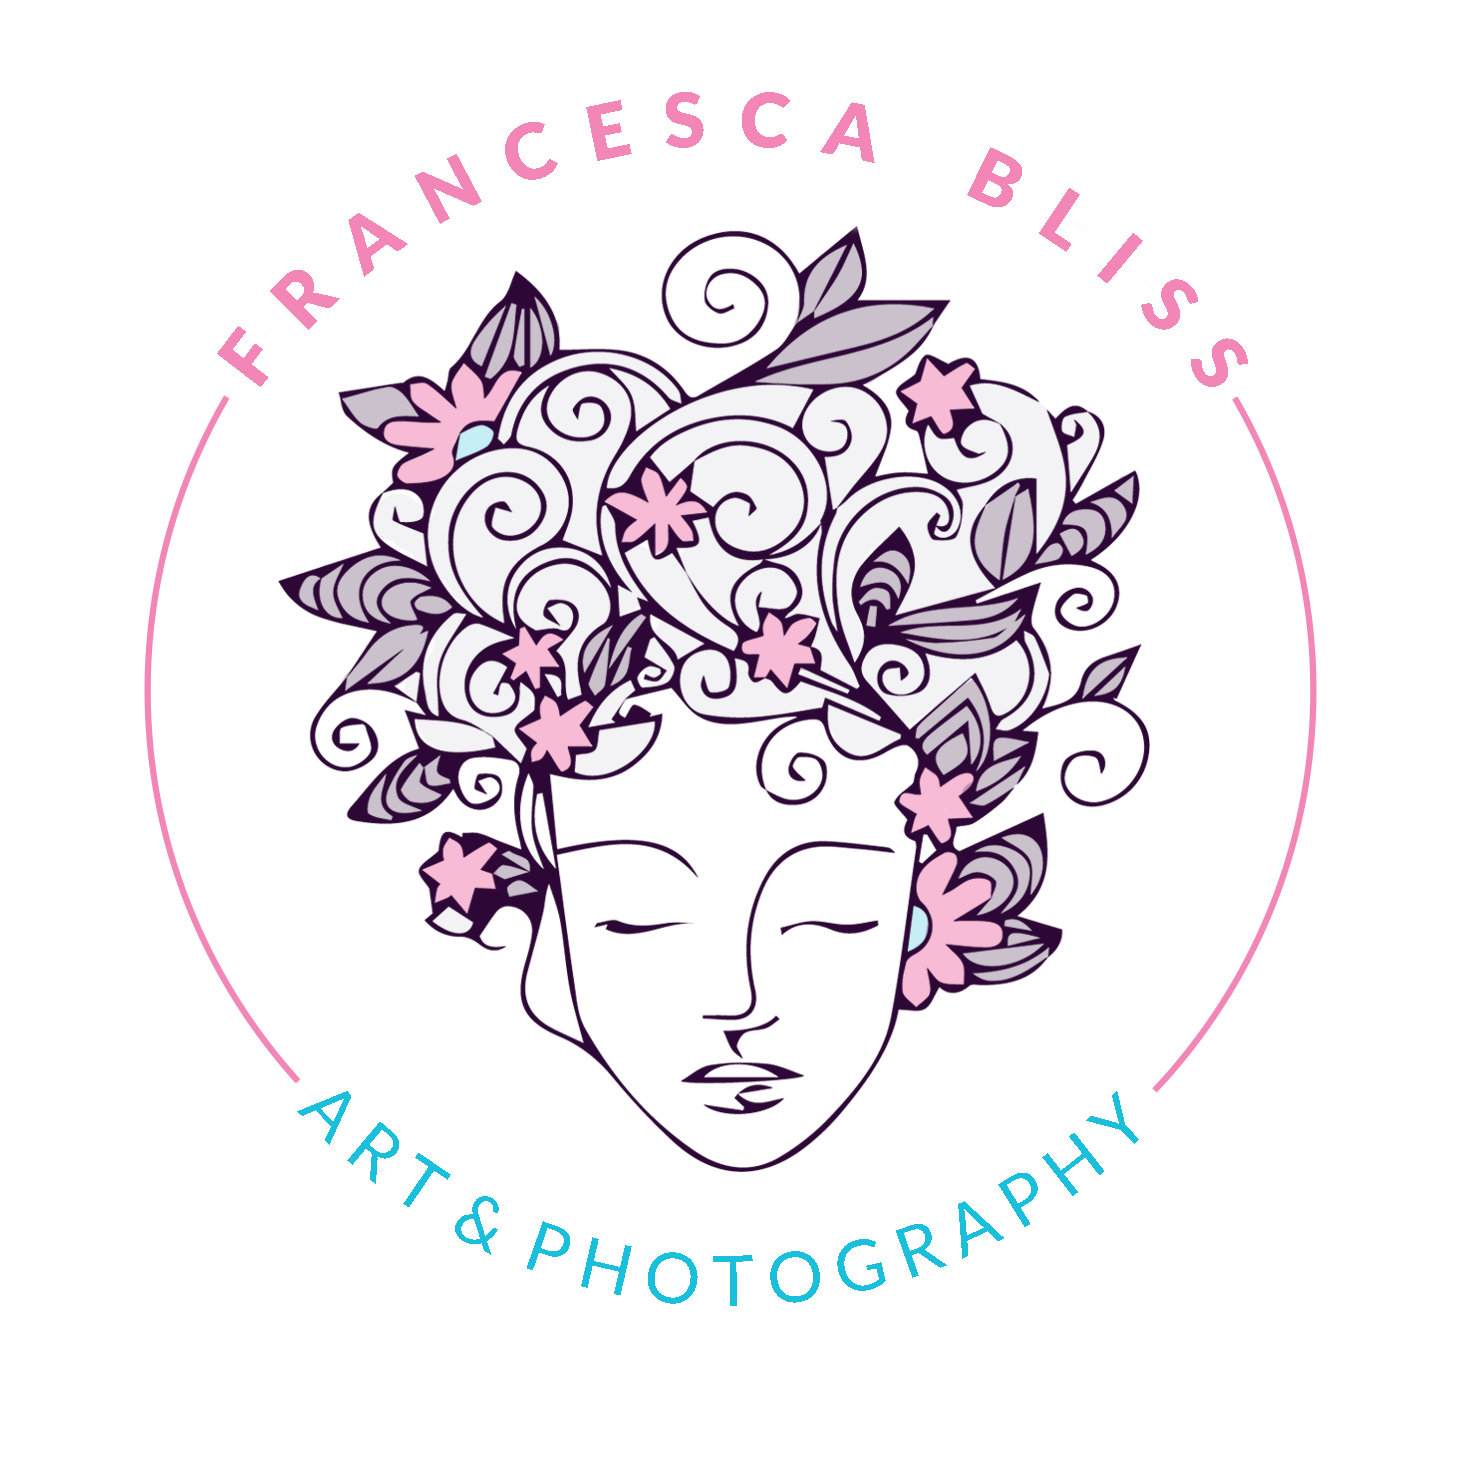 francesca-bliss-art-and-photography